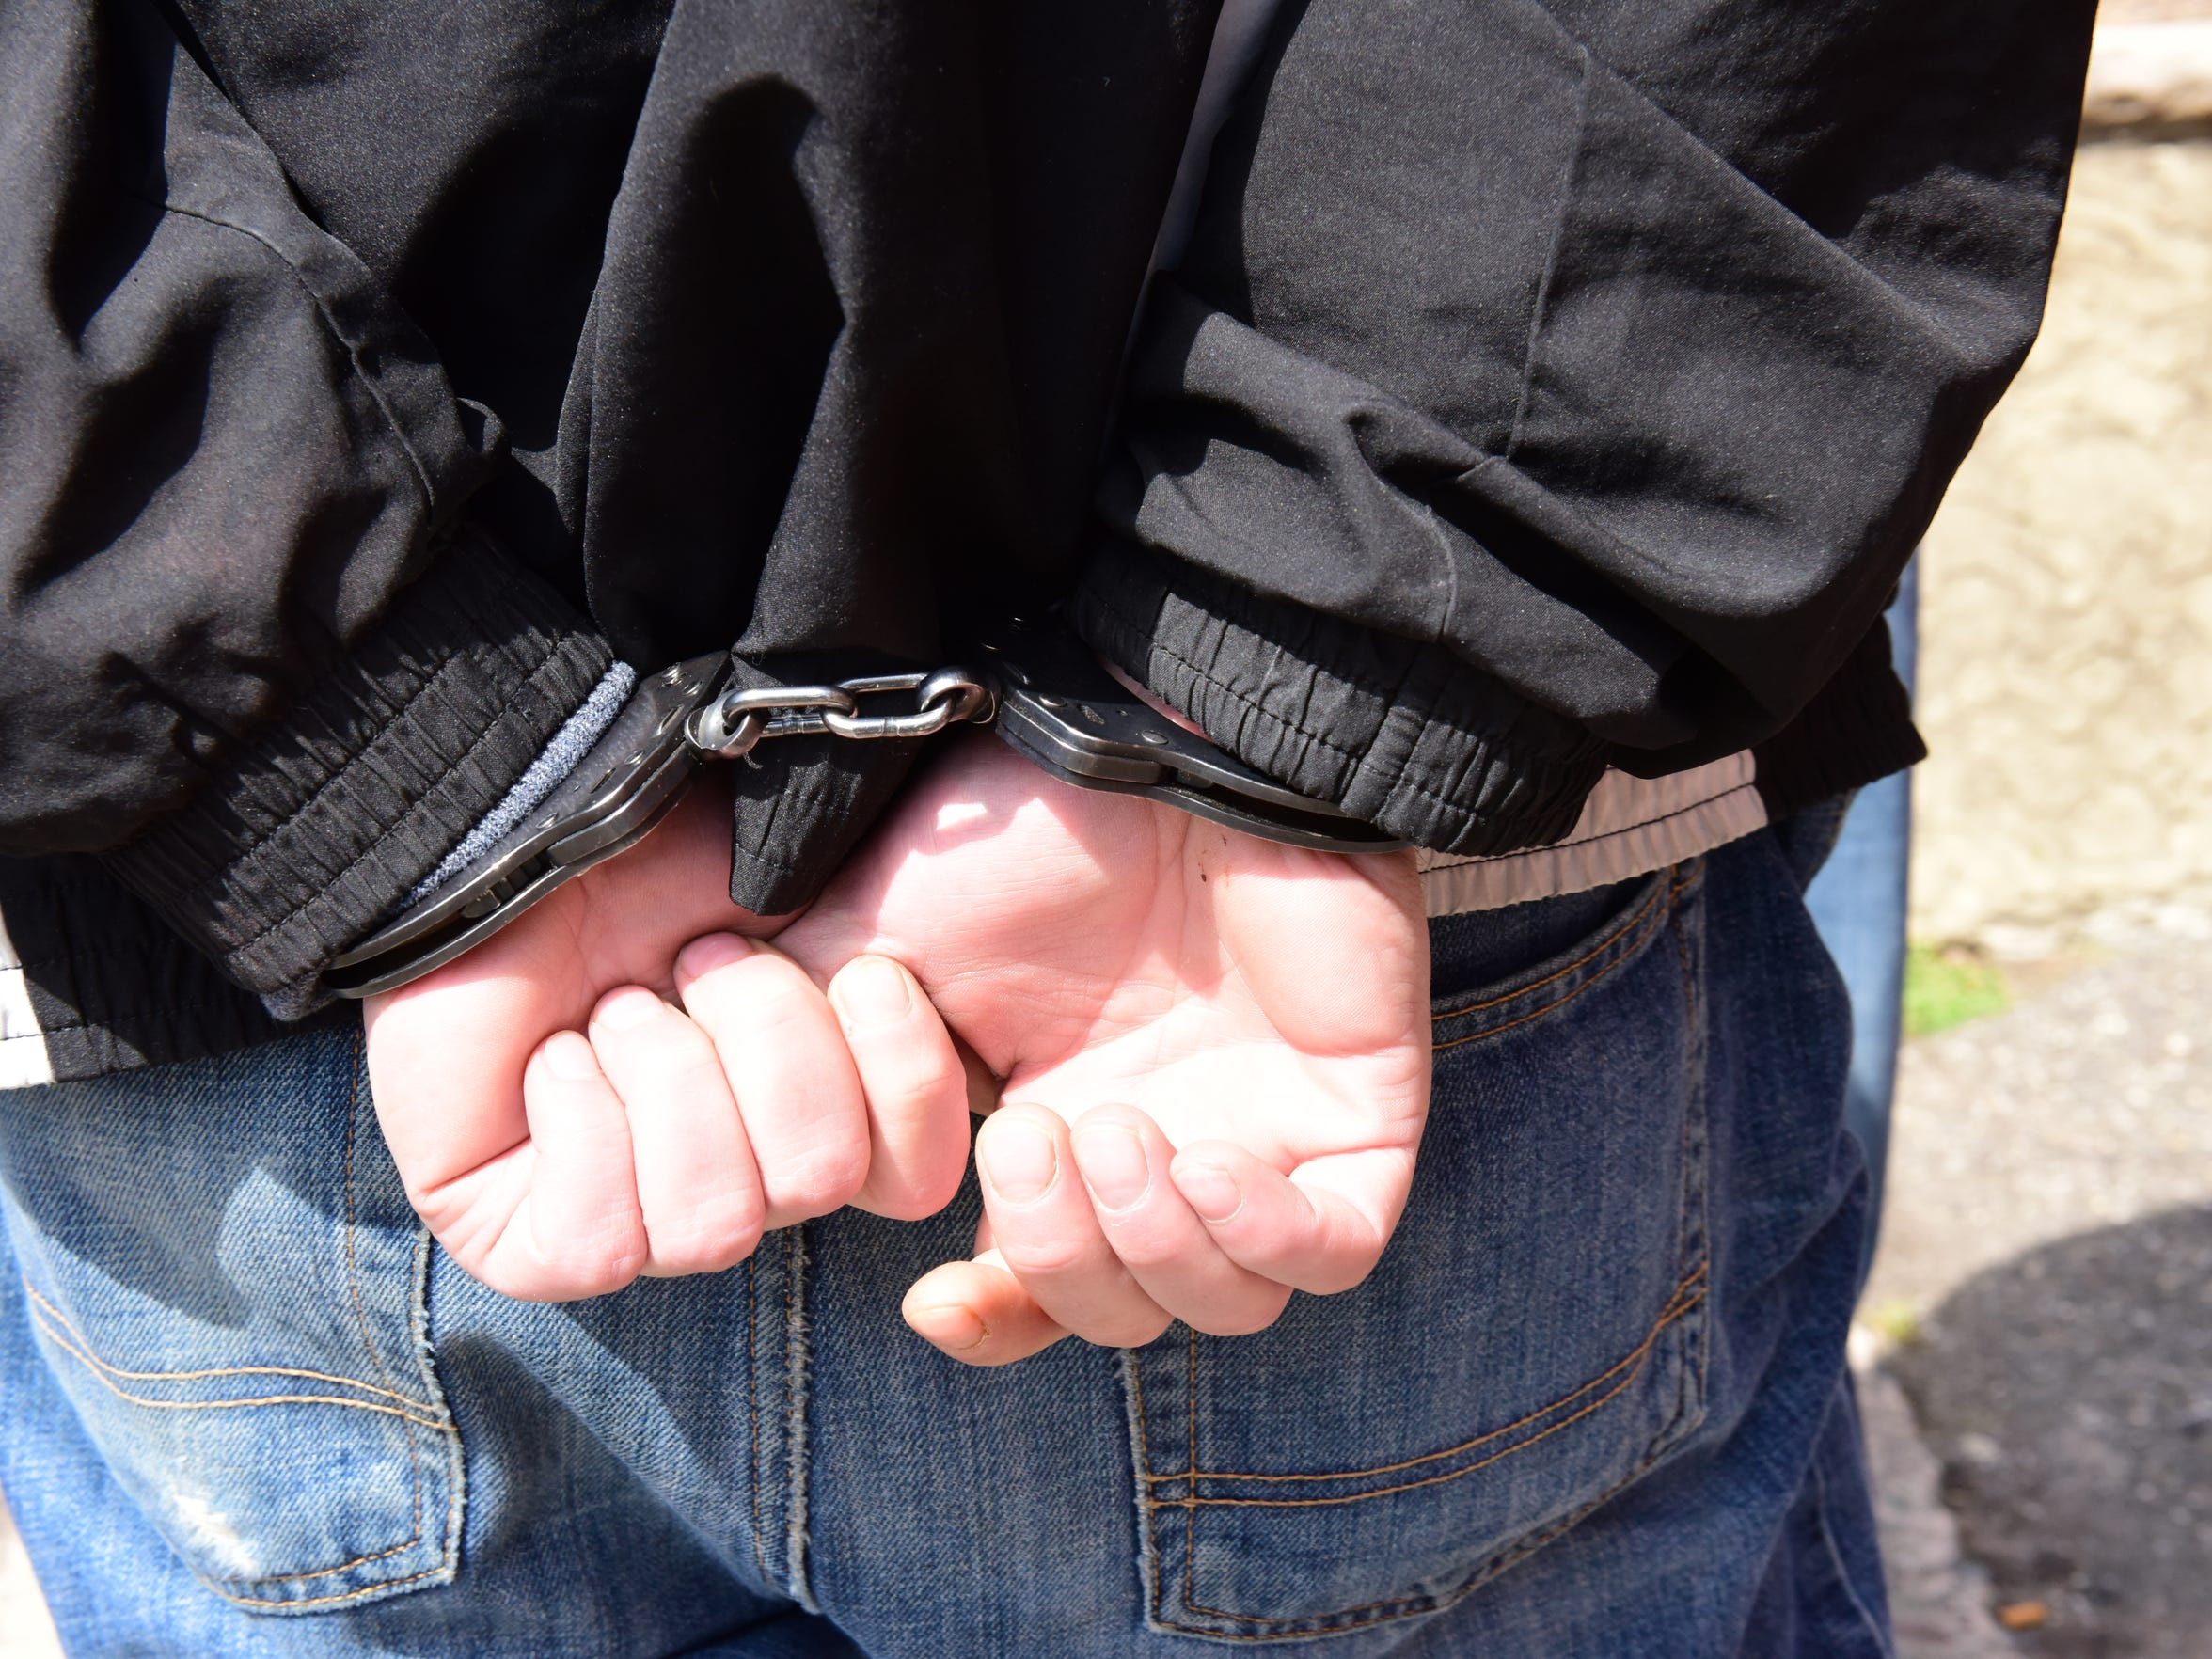 A man is arrested with paraphernalia in Elmwood Park